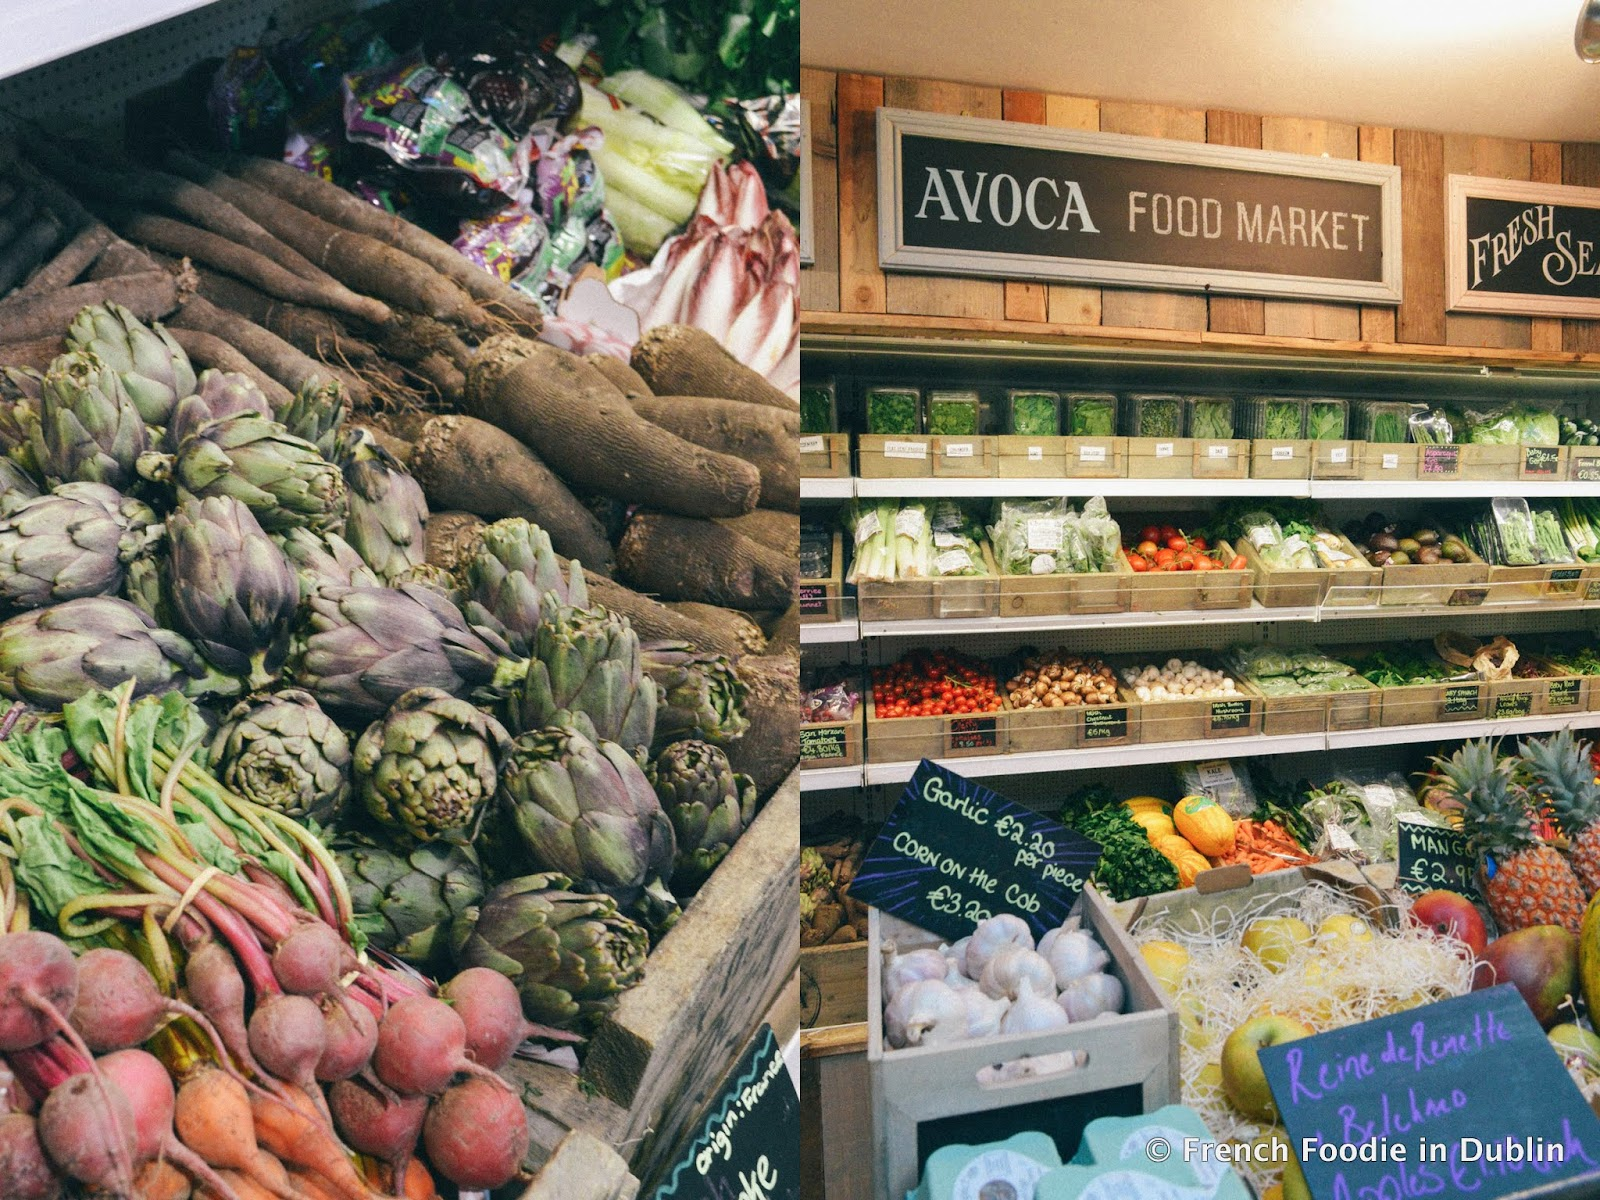 Avoca Food Market